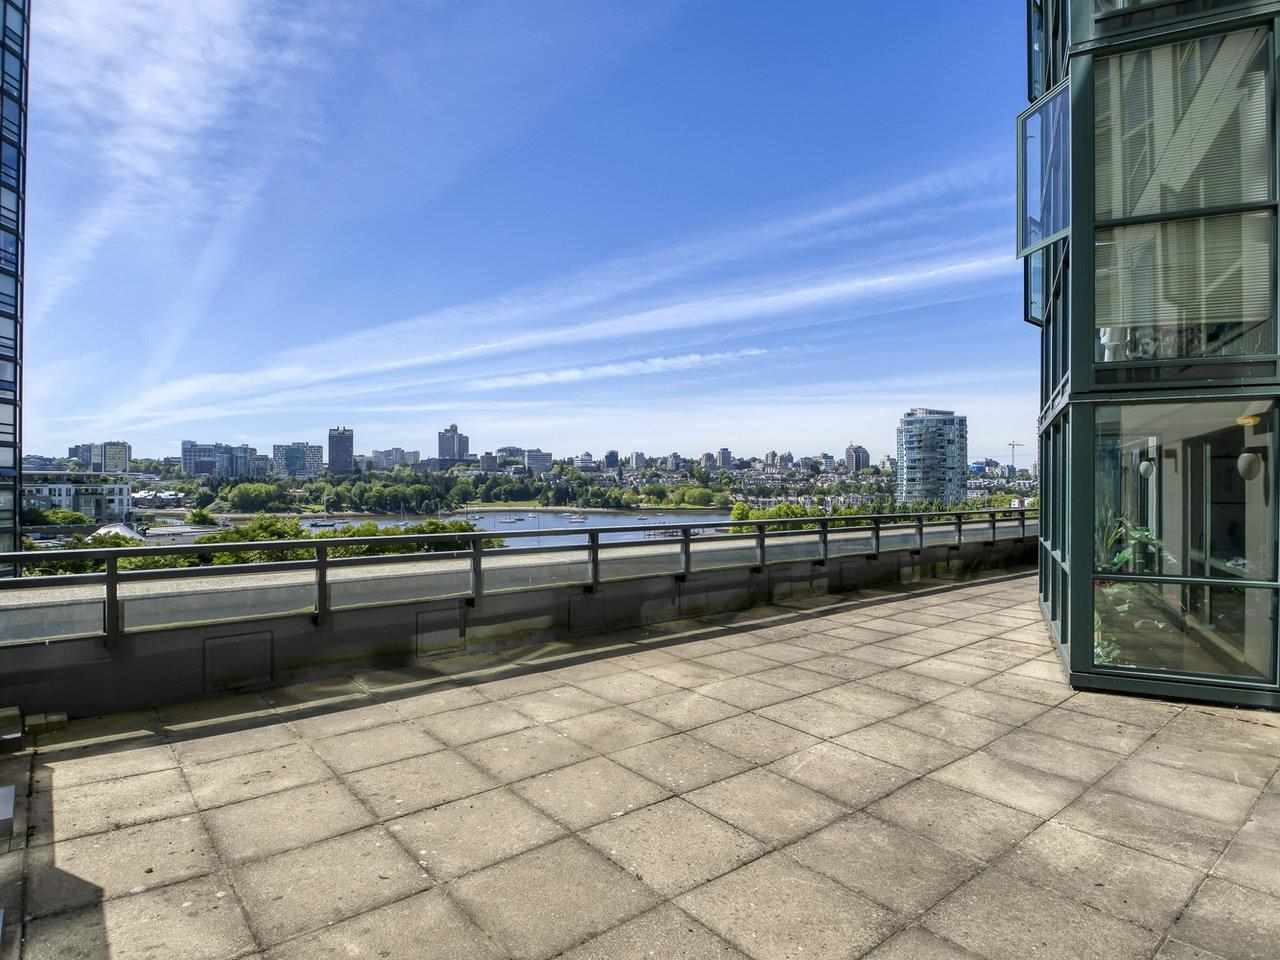 705 289 DRAKE STREET - Yaletown Apartment/Condo for sale, 2 Bedrooms (R2578002) - #1